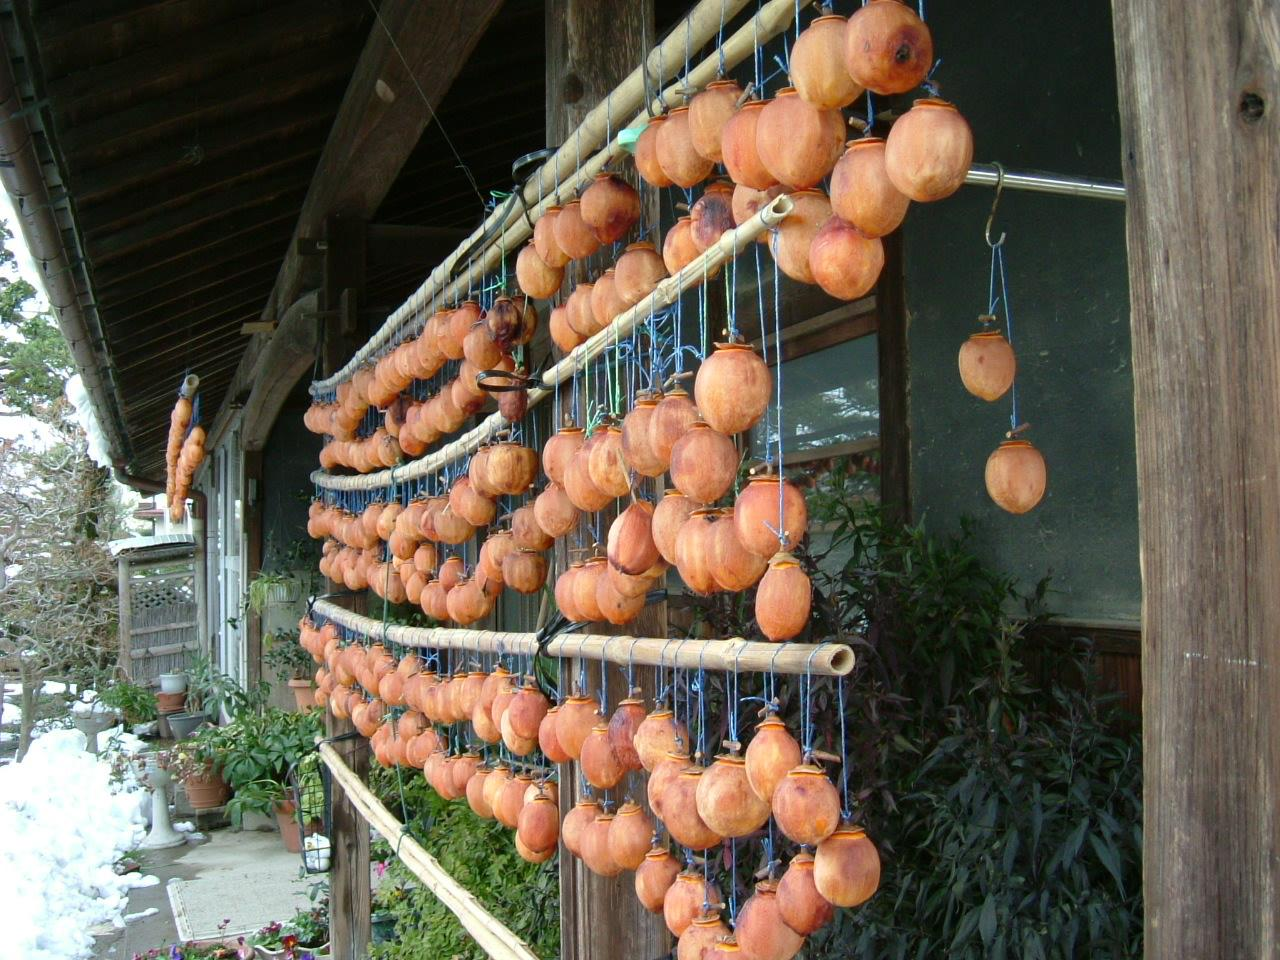 Dry Persimmons